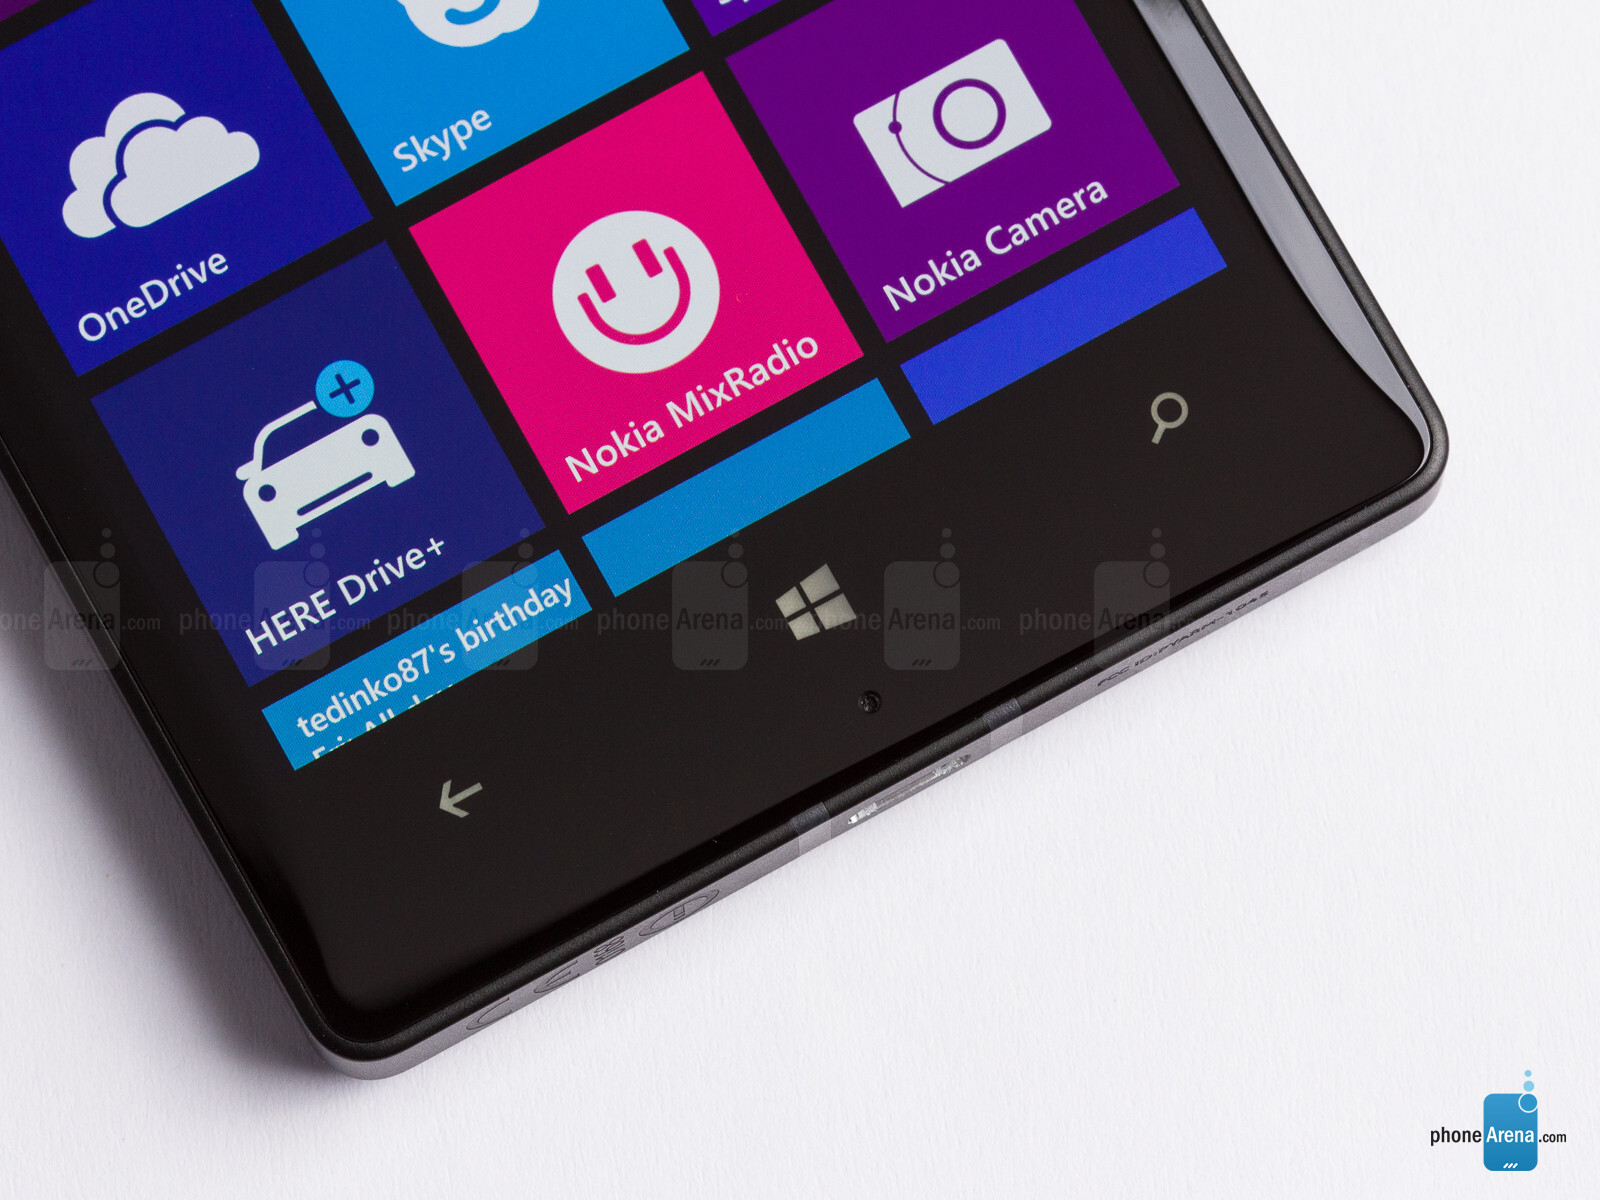 Leakster suggests the next Lumia flagship will be metal ...